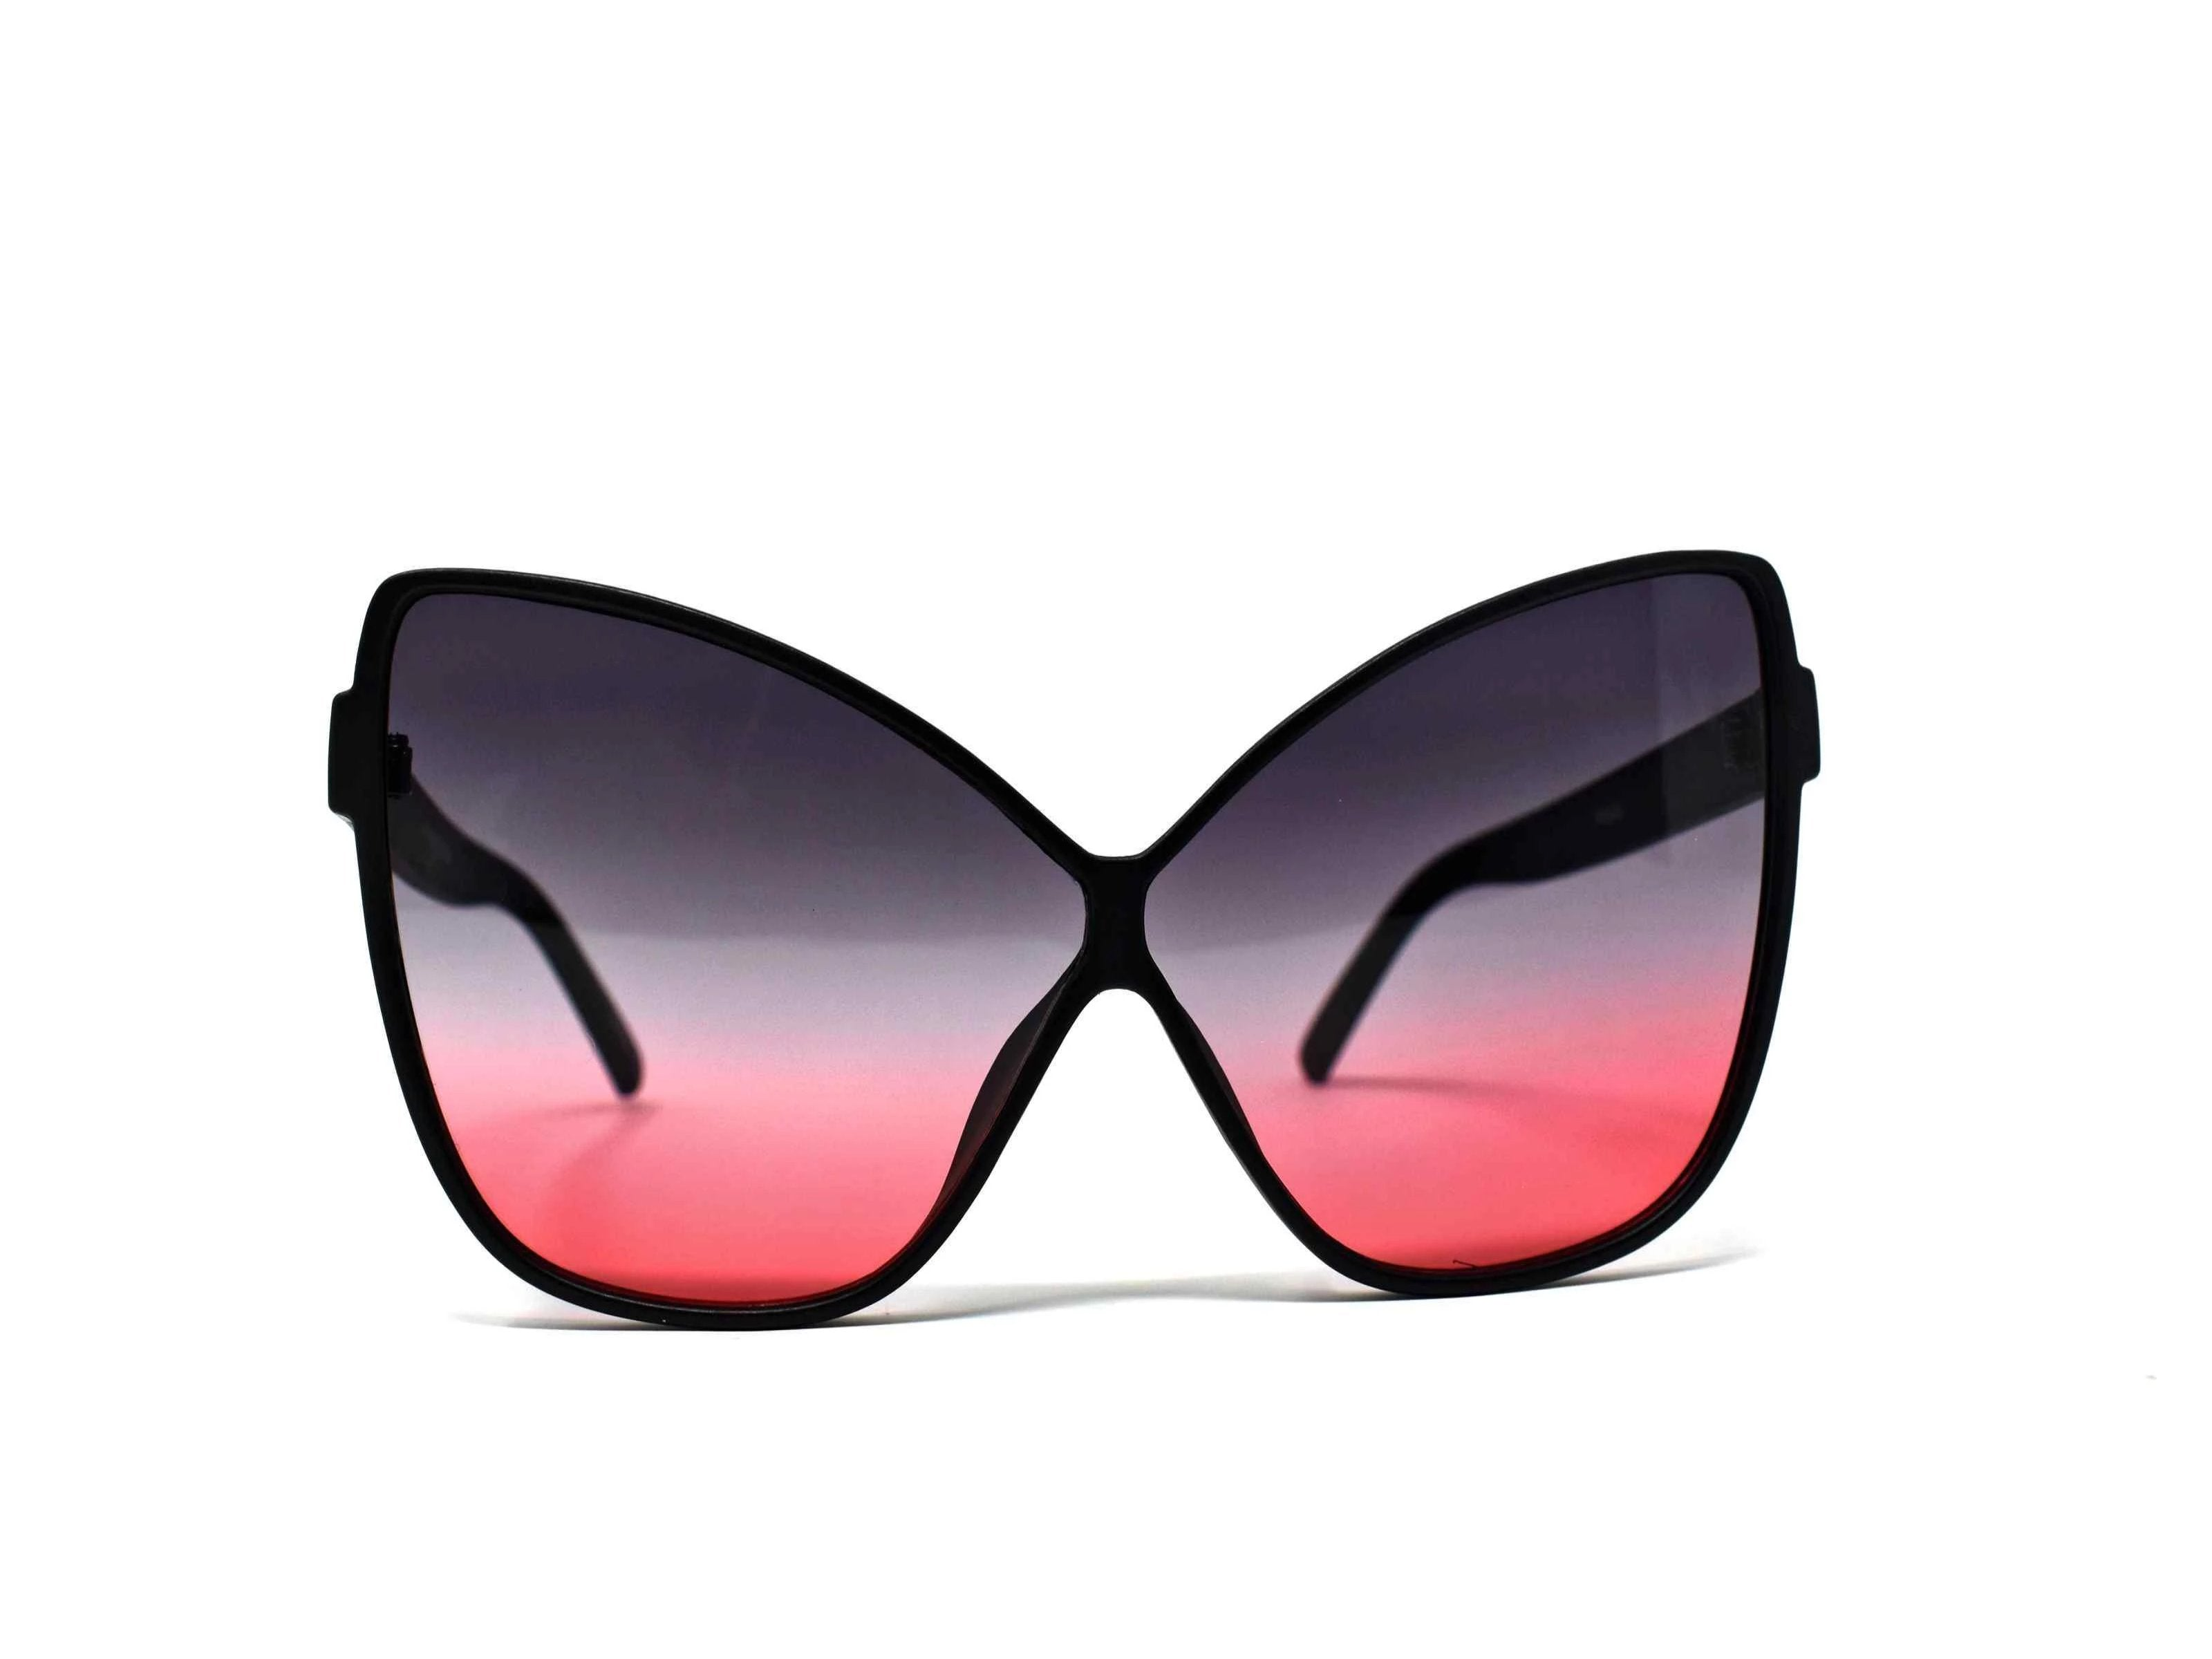 Our dahlia matte black cat eye frame with a black to pink ombre lens should be considered a no brainer when adding a touch of eye catching style.